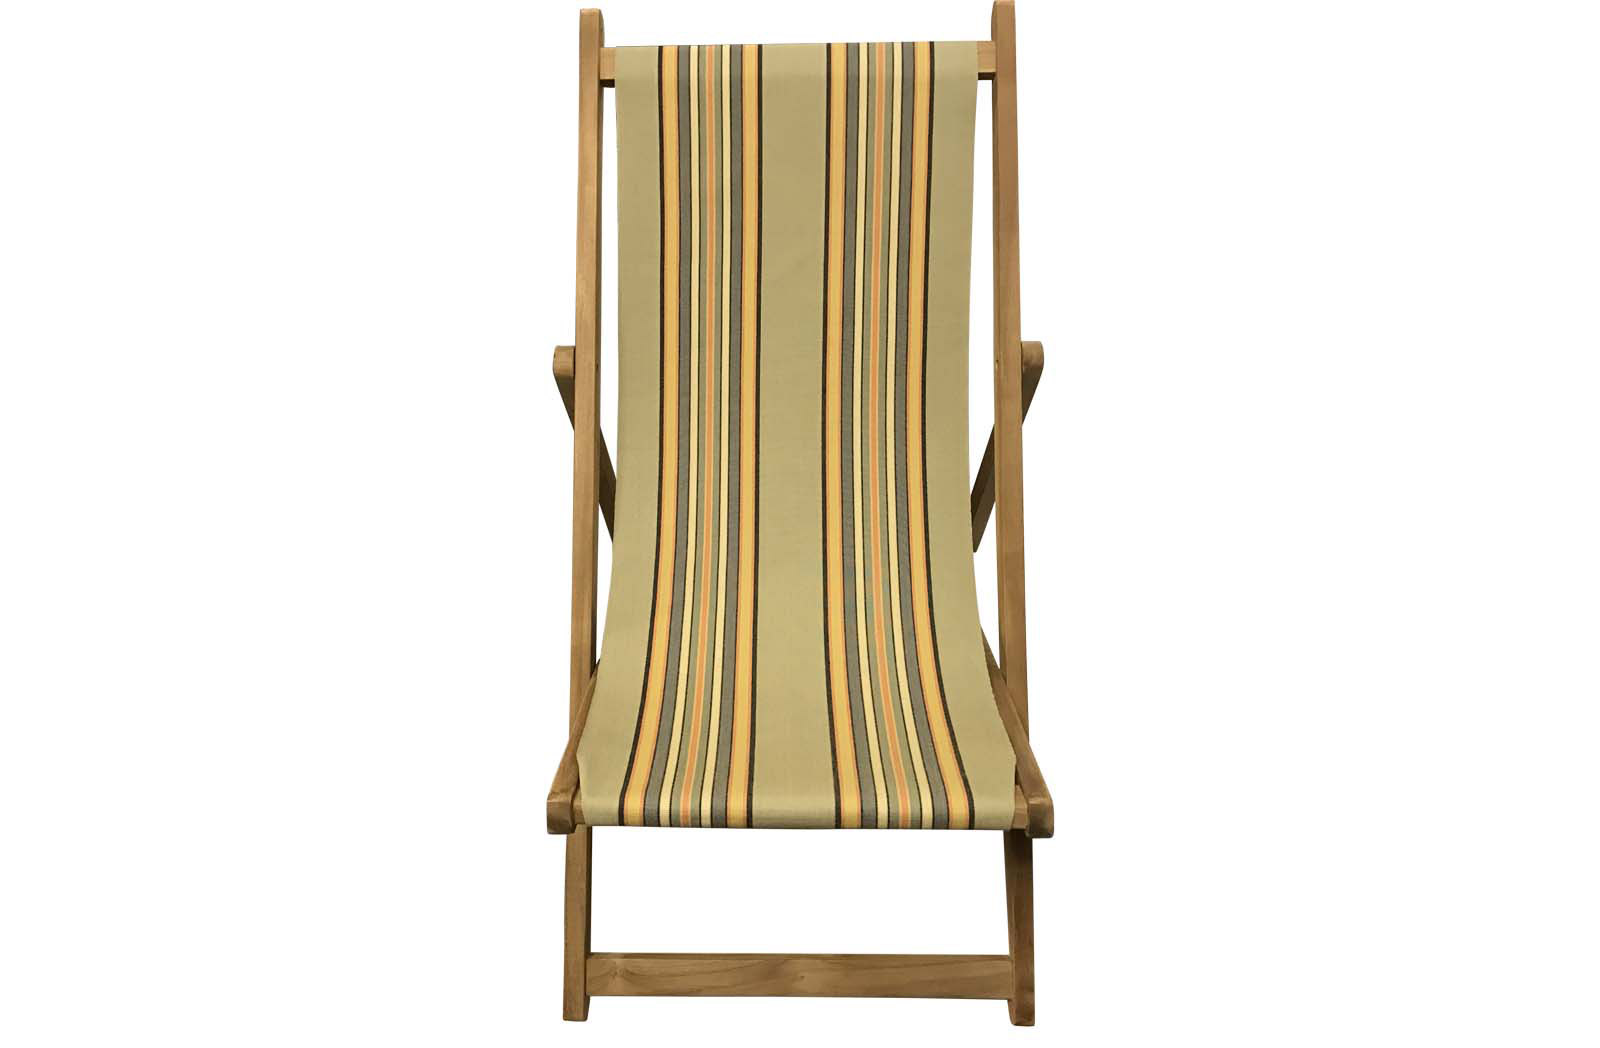 khaki, sand, light blue - Deckchairs | Buy Folding Wooden Deck Chairs